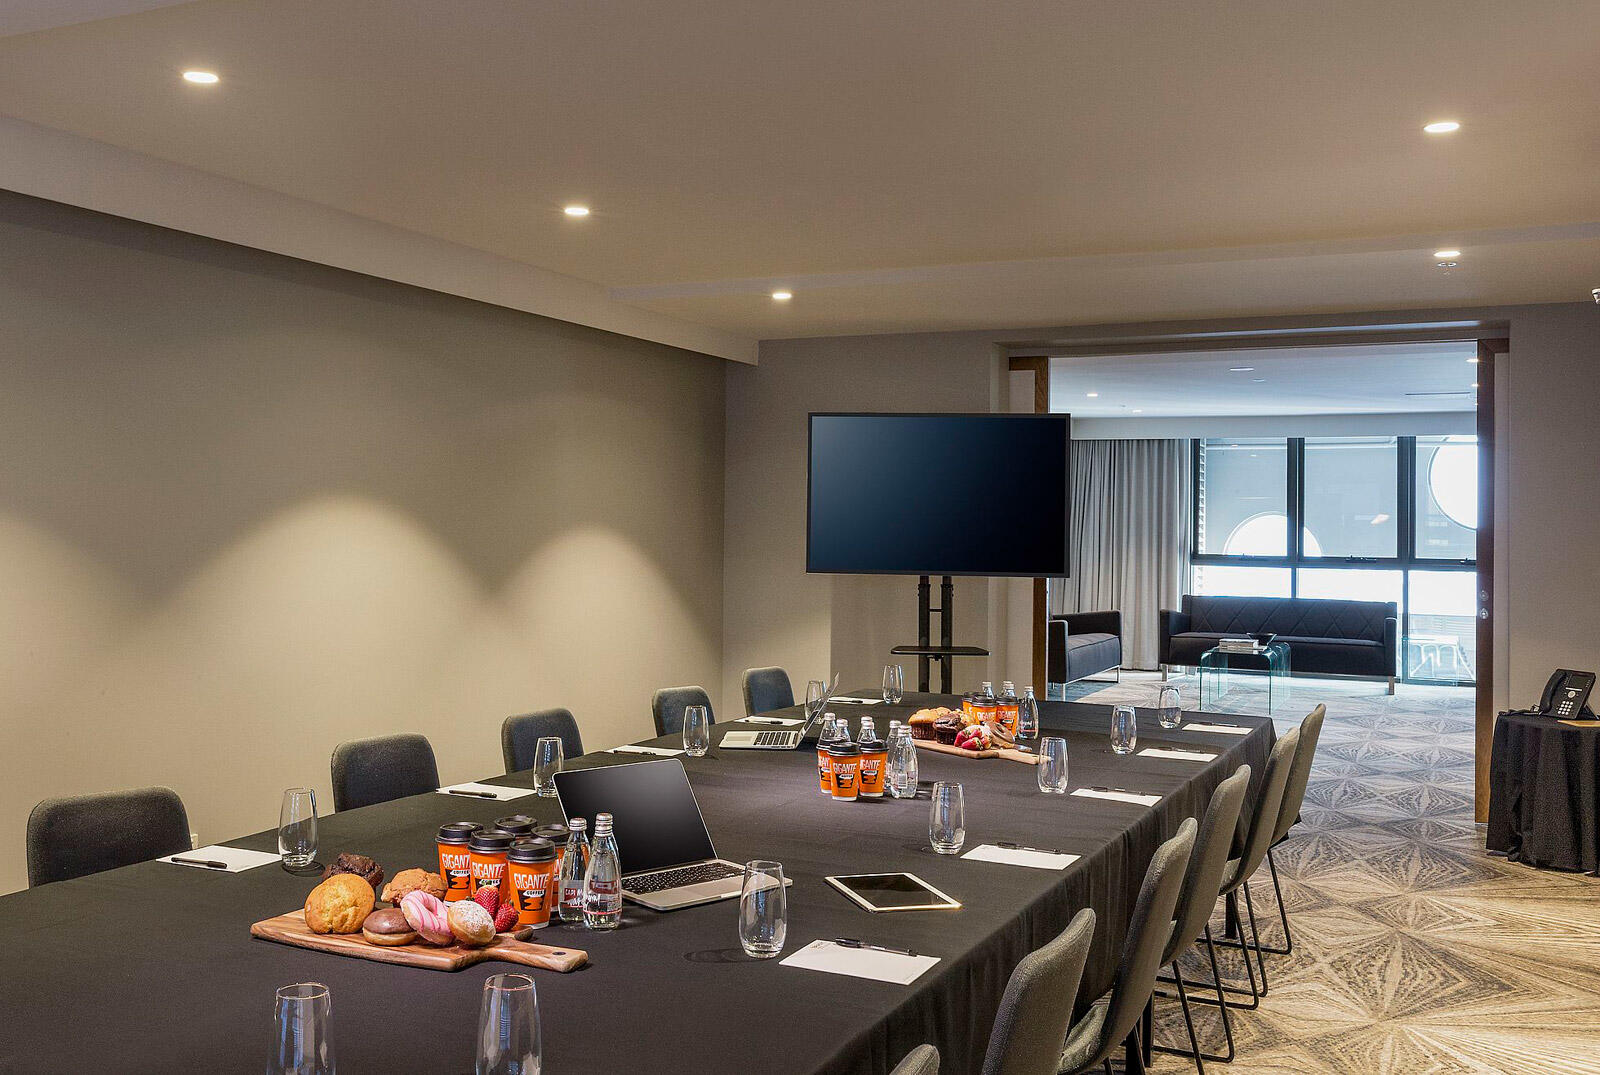 Meeting room at Brady Hotel in central Melbourne